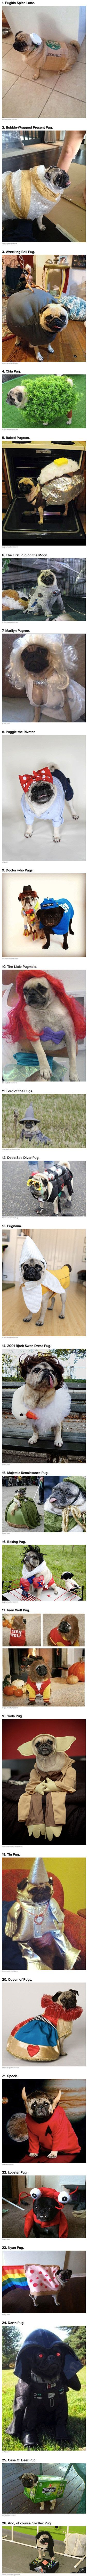 Pug-...thing. I cant even describe this